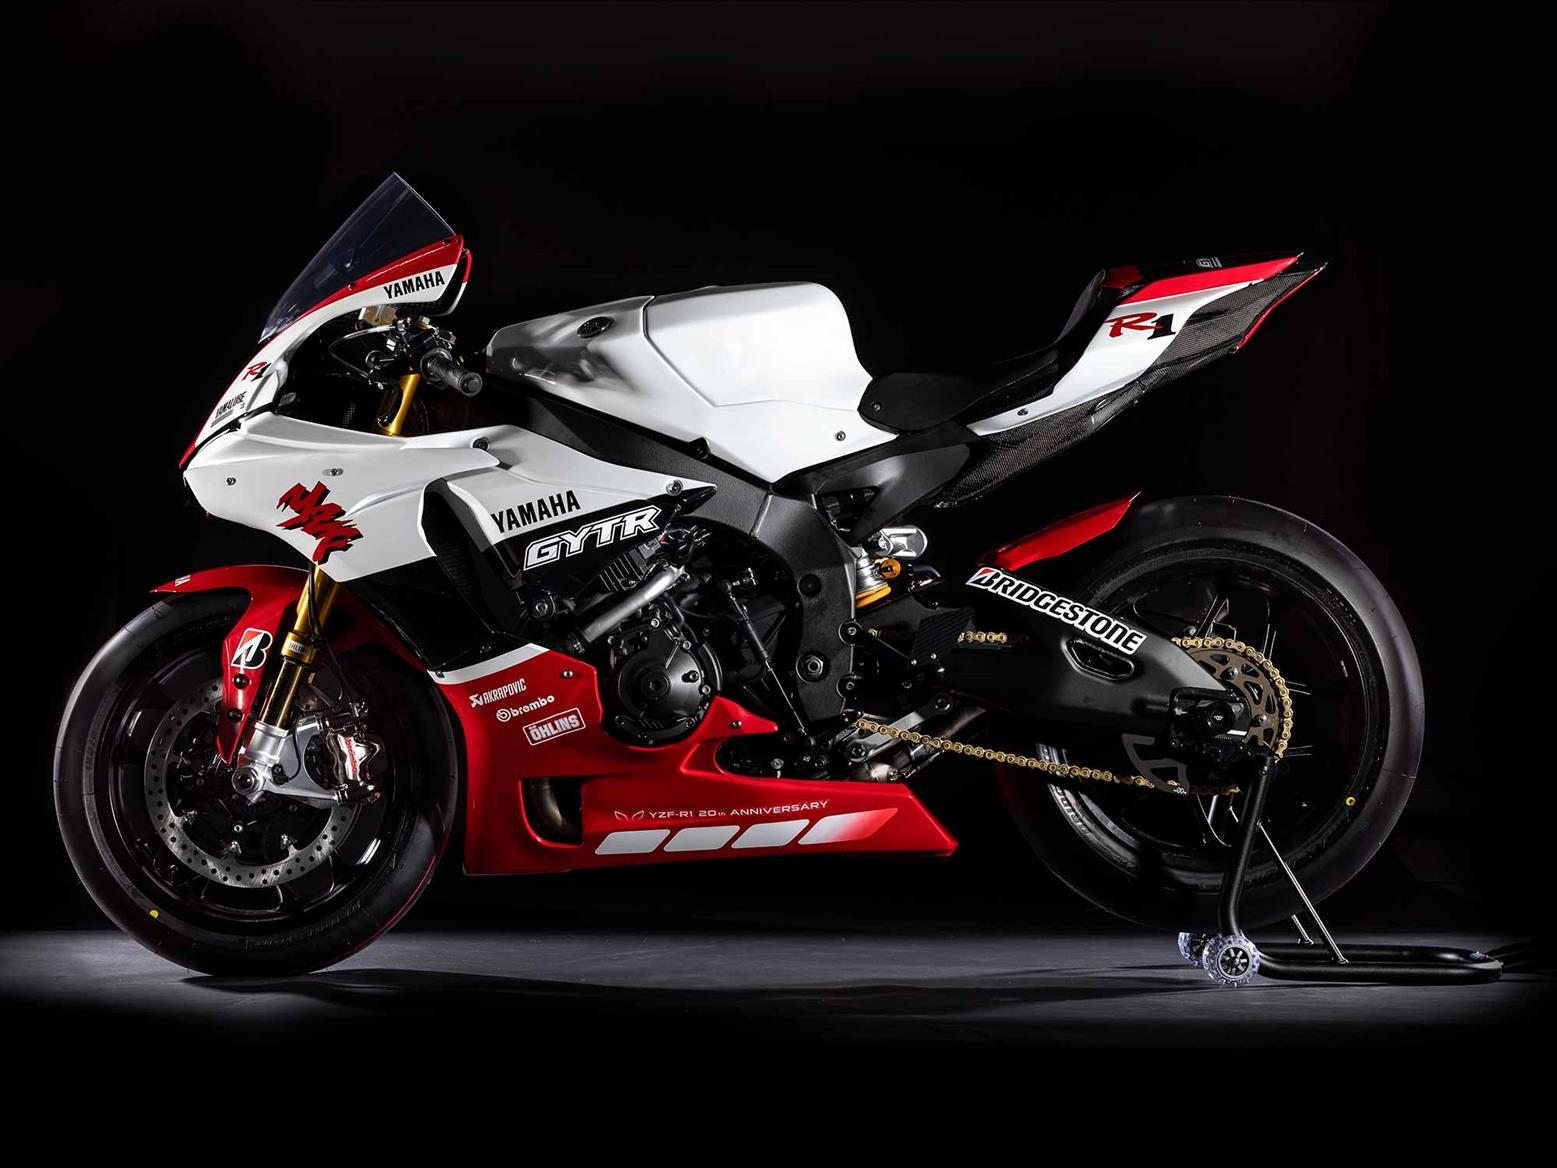 Special edition Yamaha GYTR R1 costs £35,000